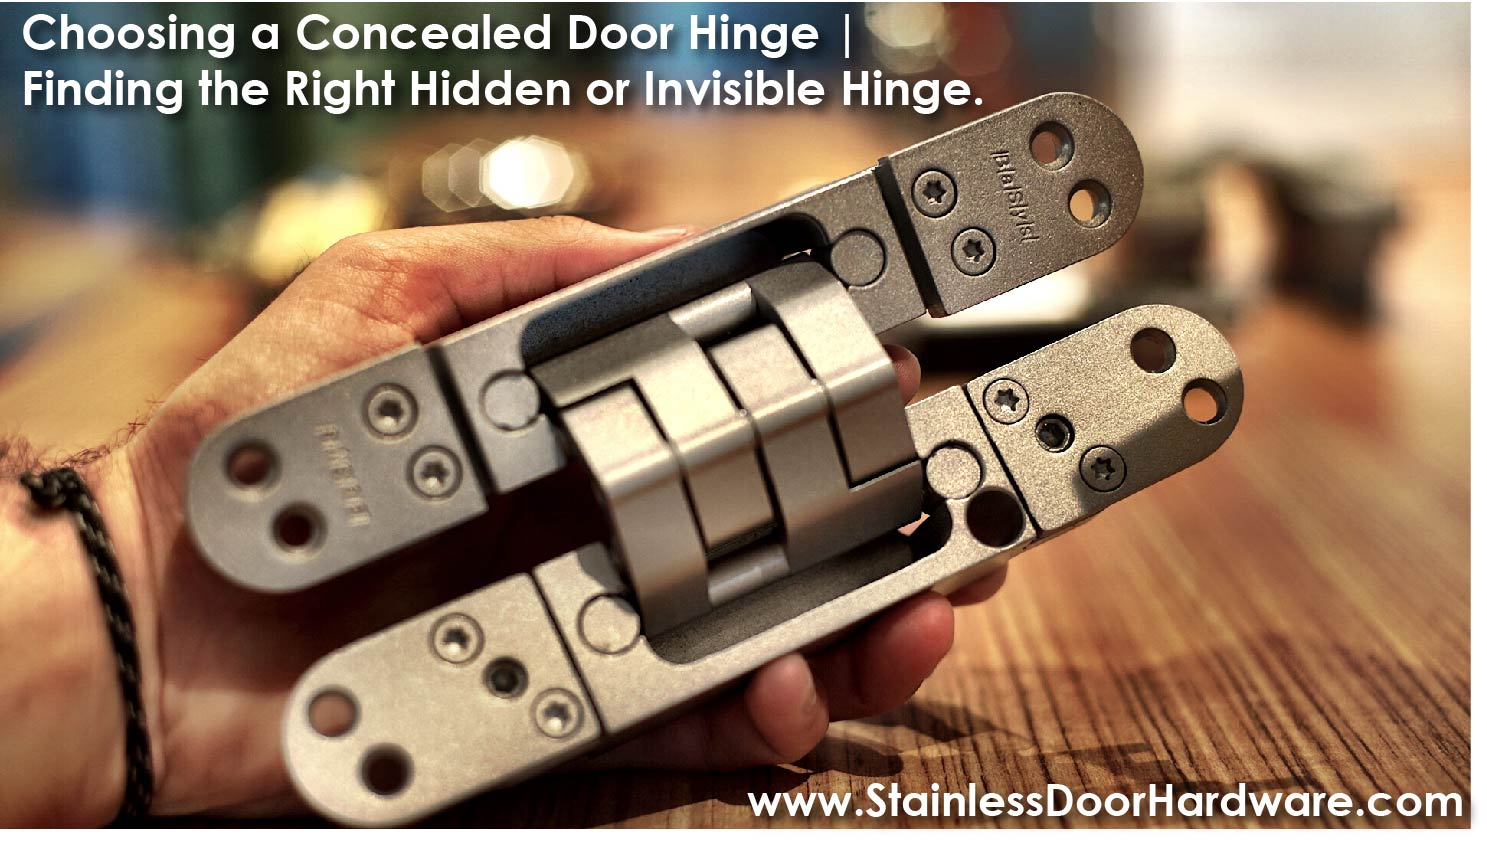 Choosing A Concealed Door Hinge Finding The Right Hidden